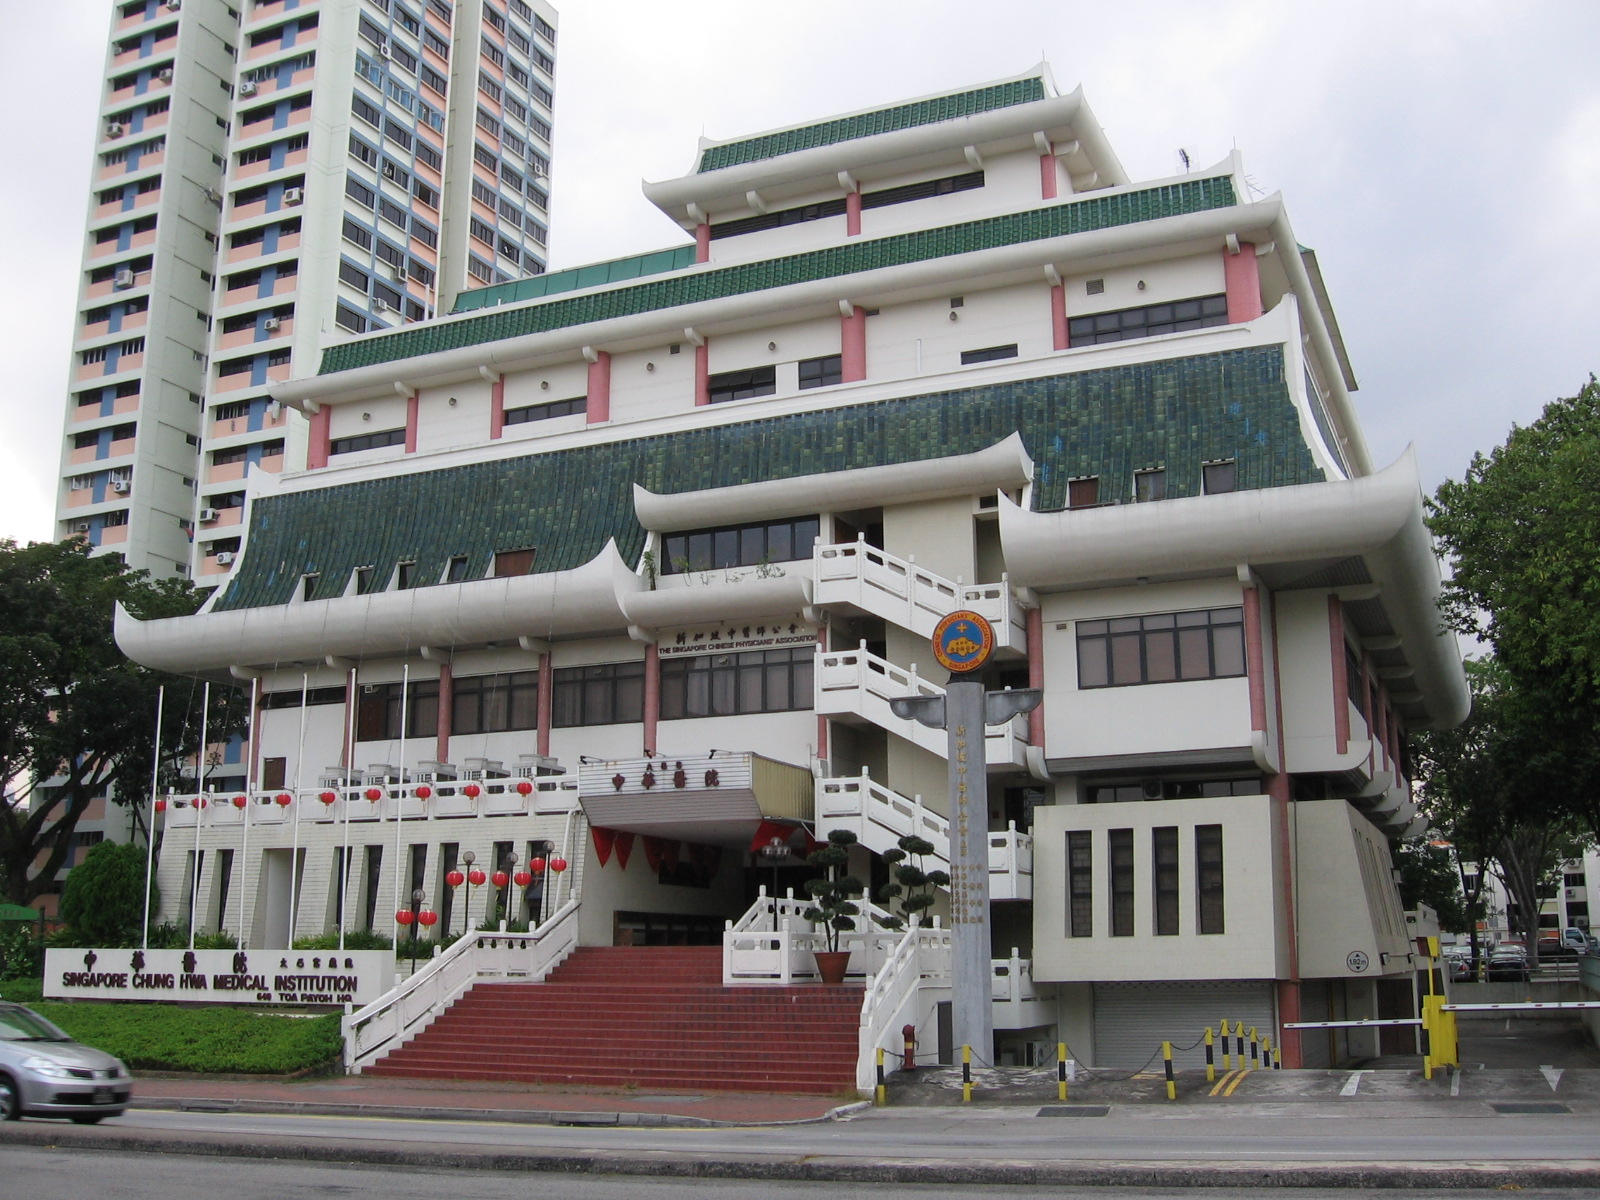 Chung Hwa Medical Institution in Toa Payoh Photo credits: Flickr